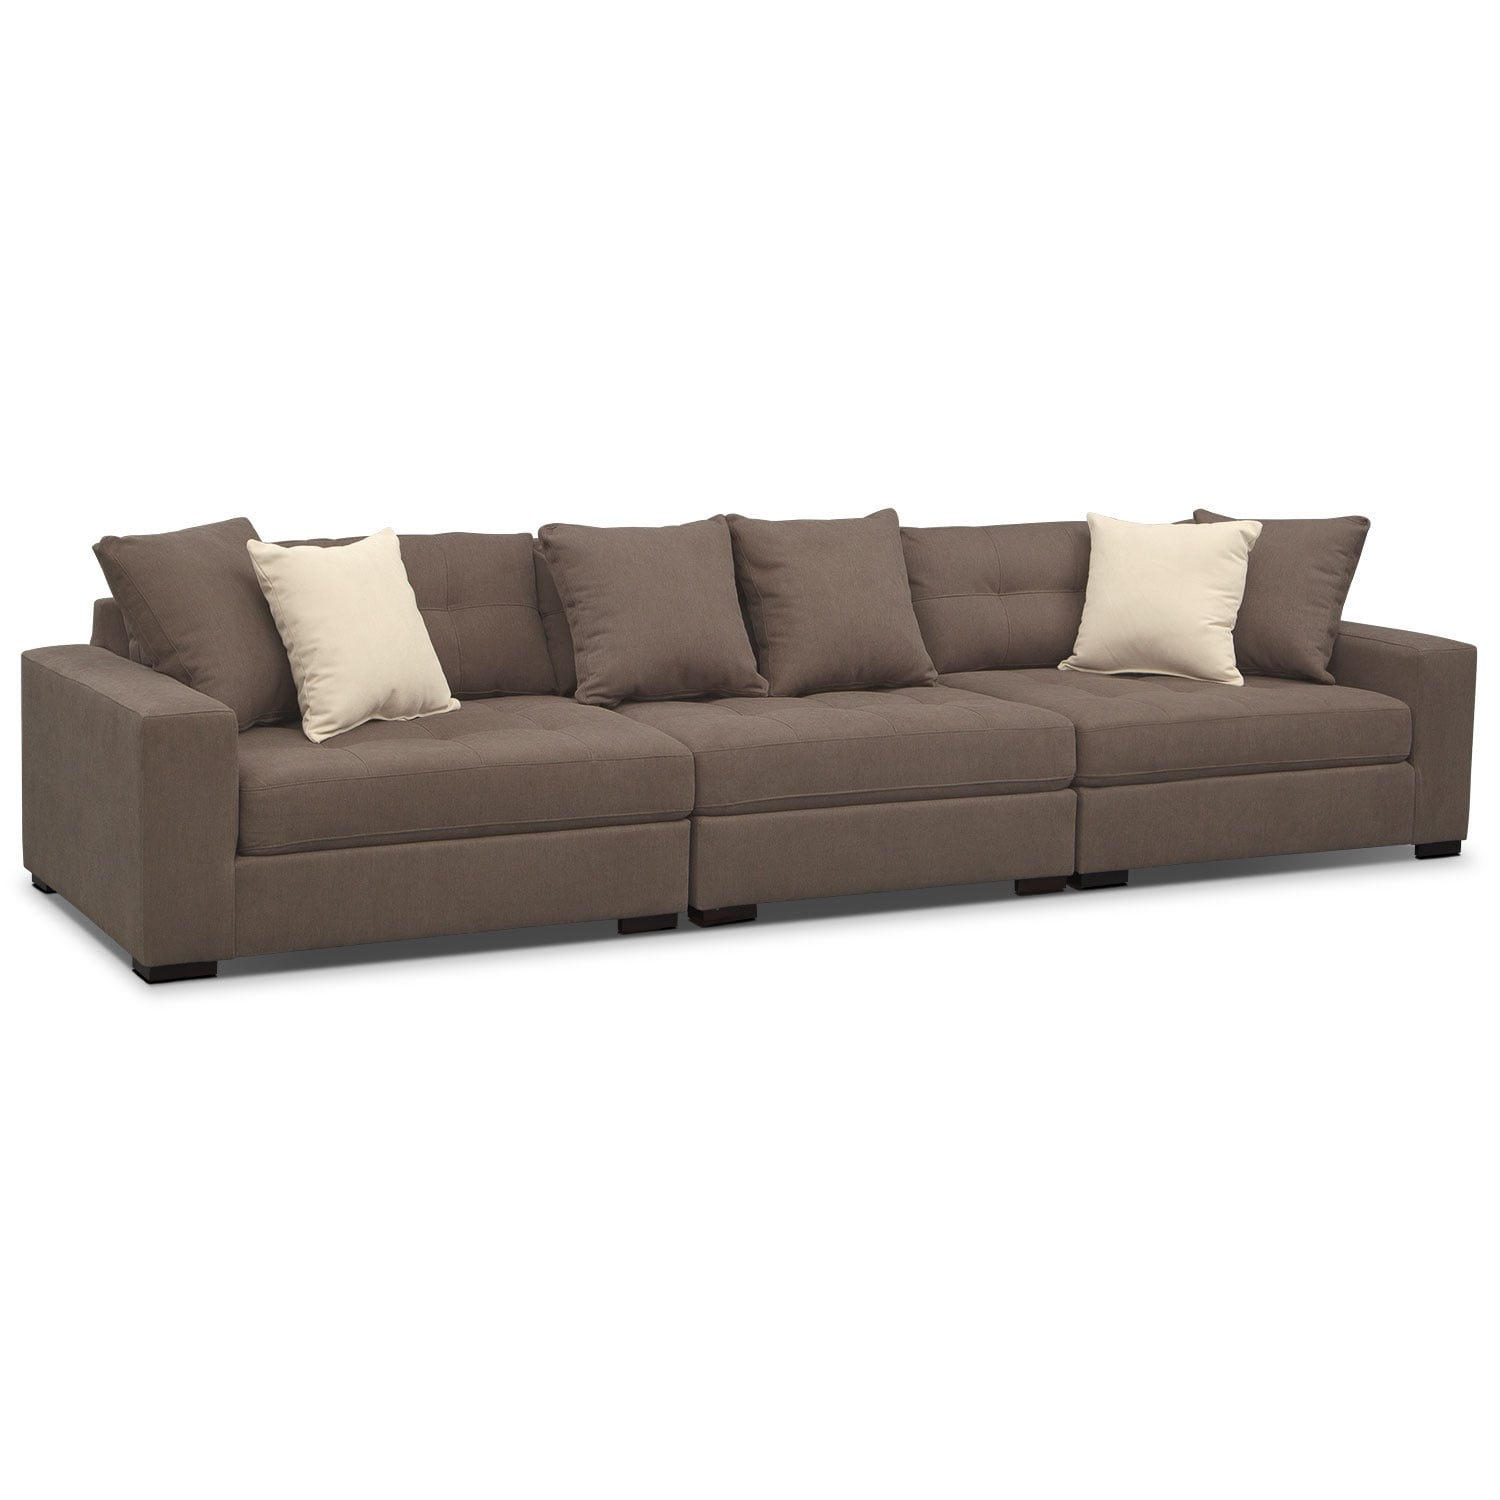 Venti 3-Piece Sectional - Mocha